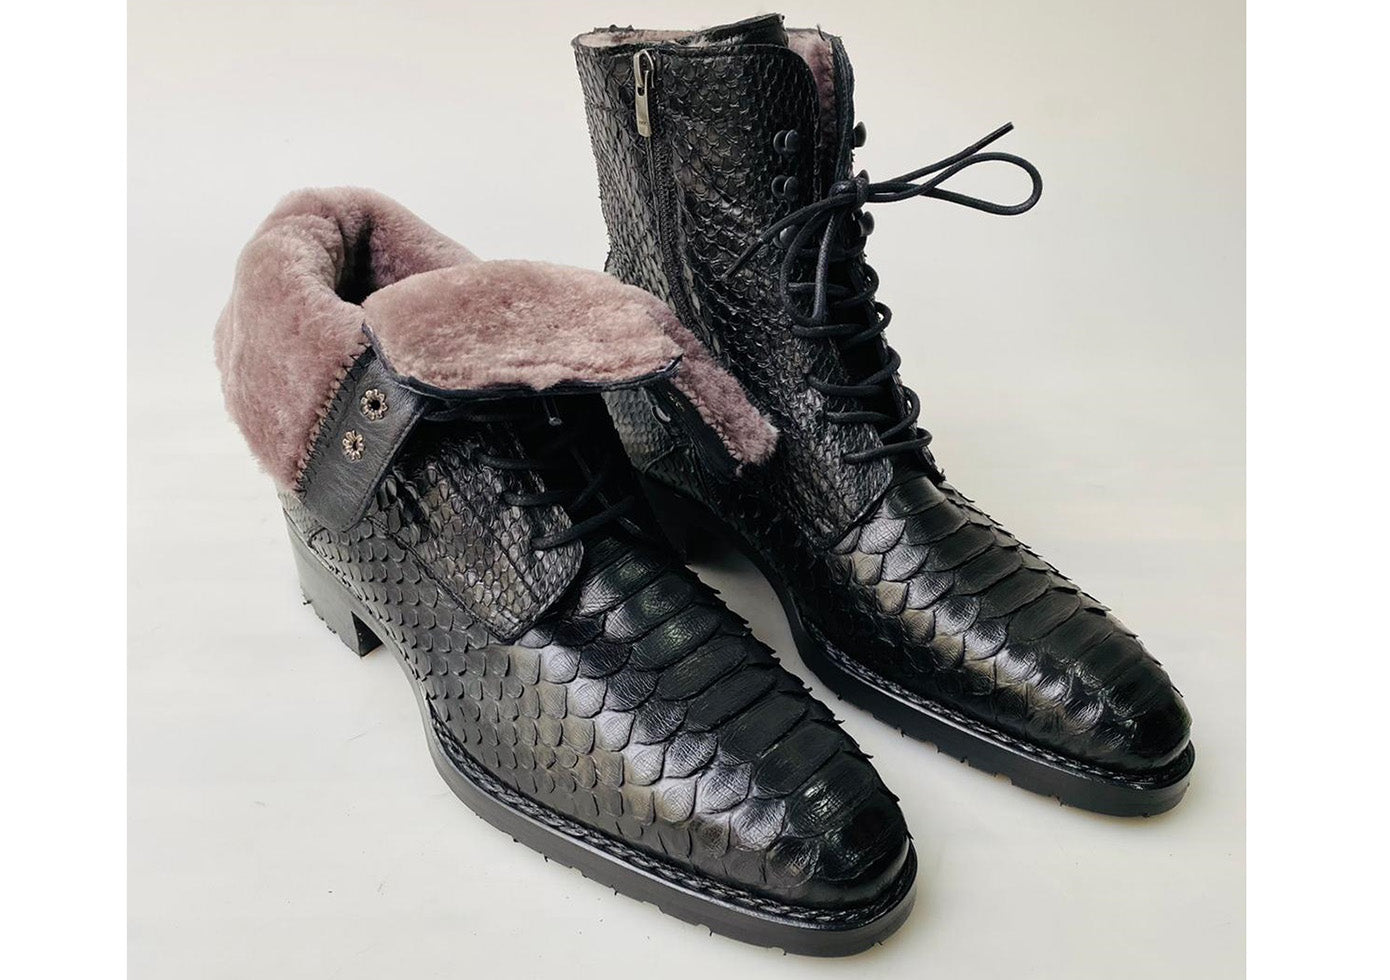 New TucciPolo Mens Winter Luxury Black Boots Handcrafted with Real Python Leather and Fur Lining